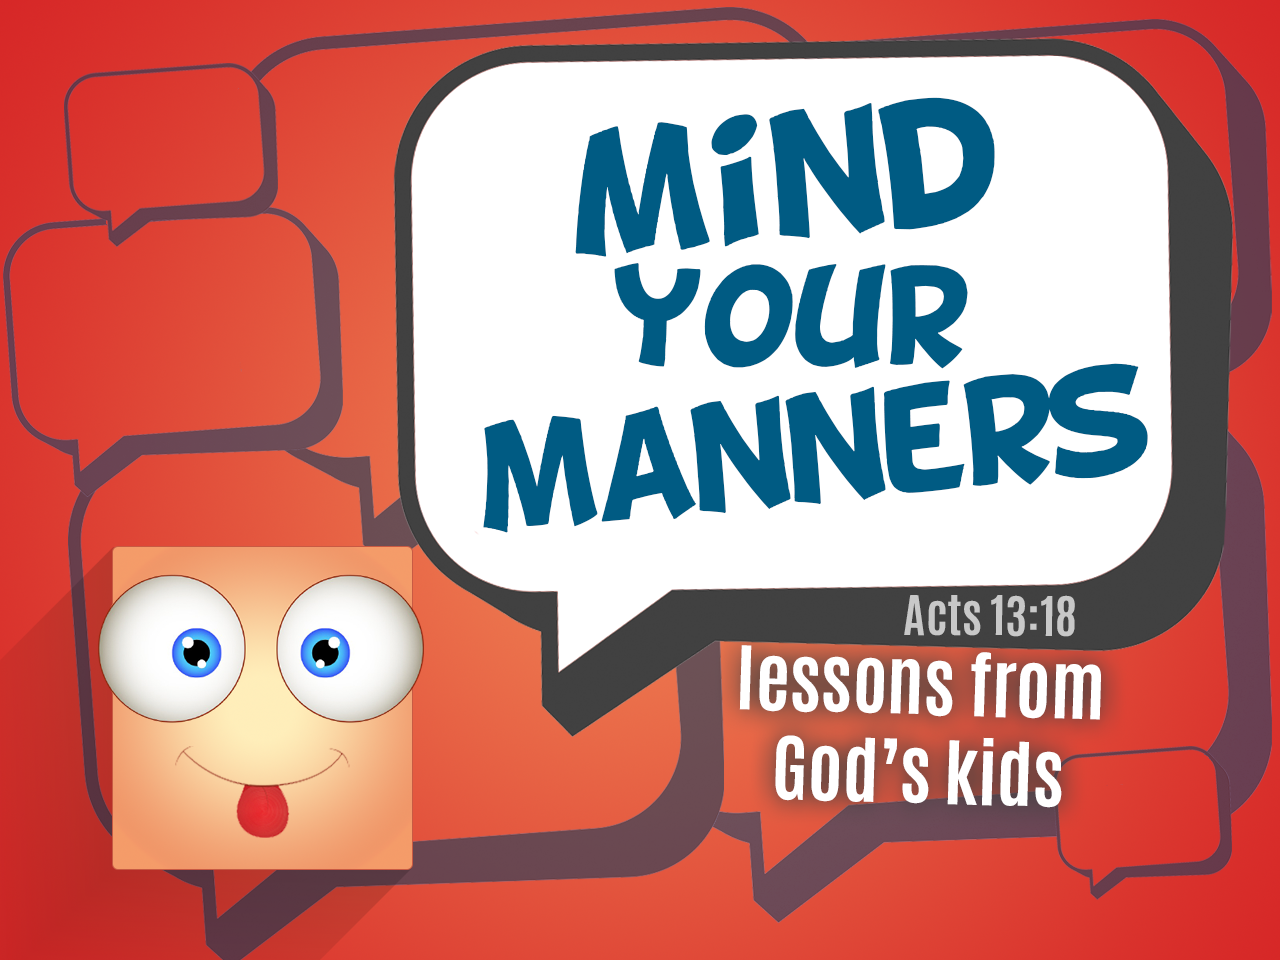 Mind Your Manners >> Vbs Mind Your Manners 4 3 Kidzblast Com